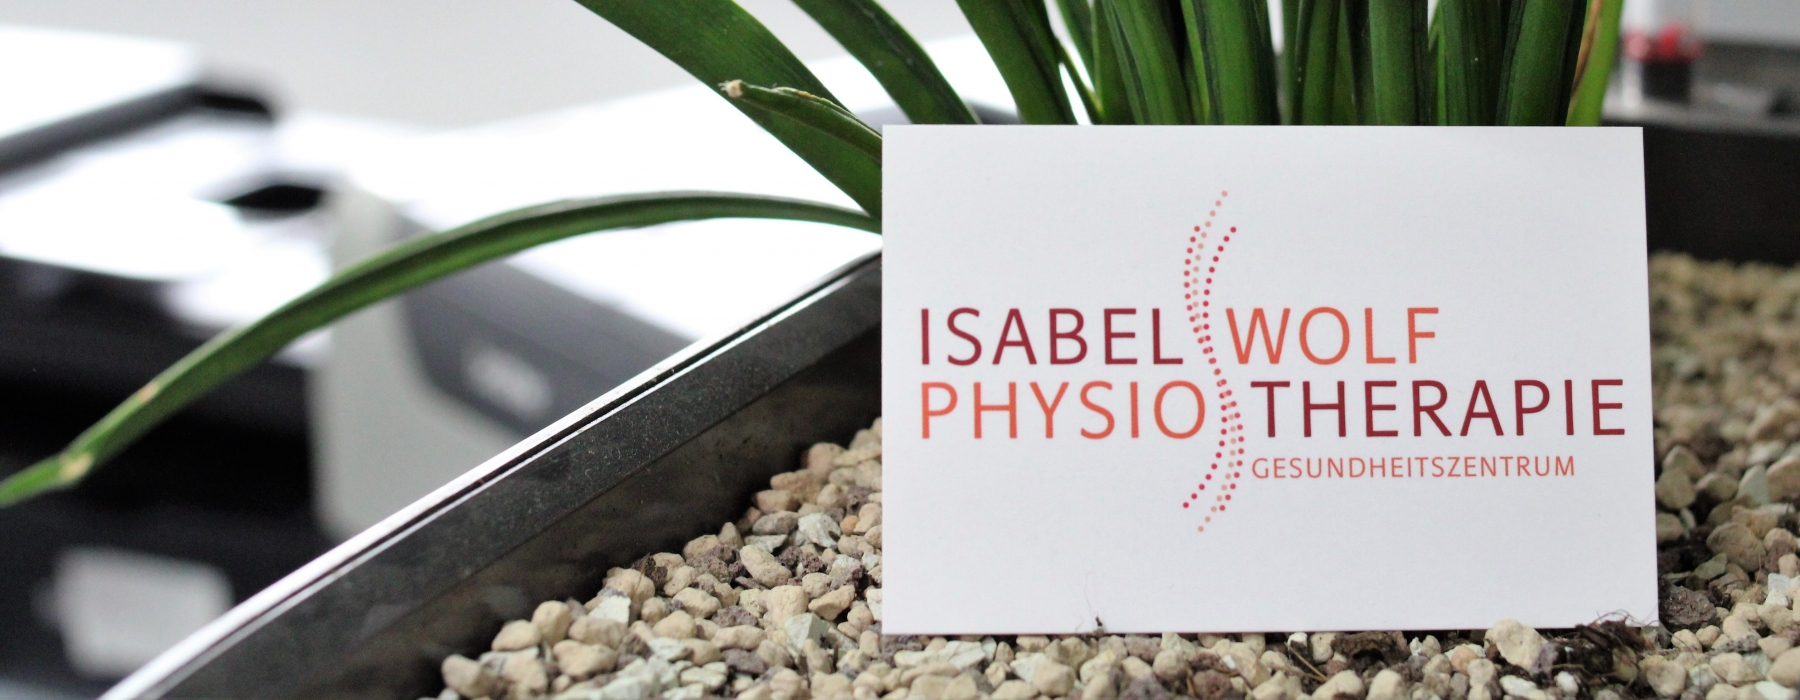 Physiotherapie Isabel Wolf Ludwigsfelde